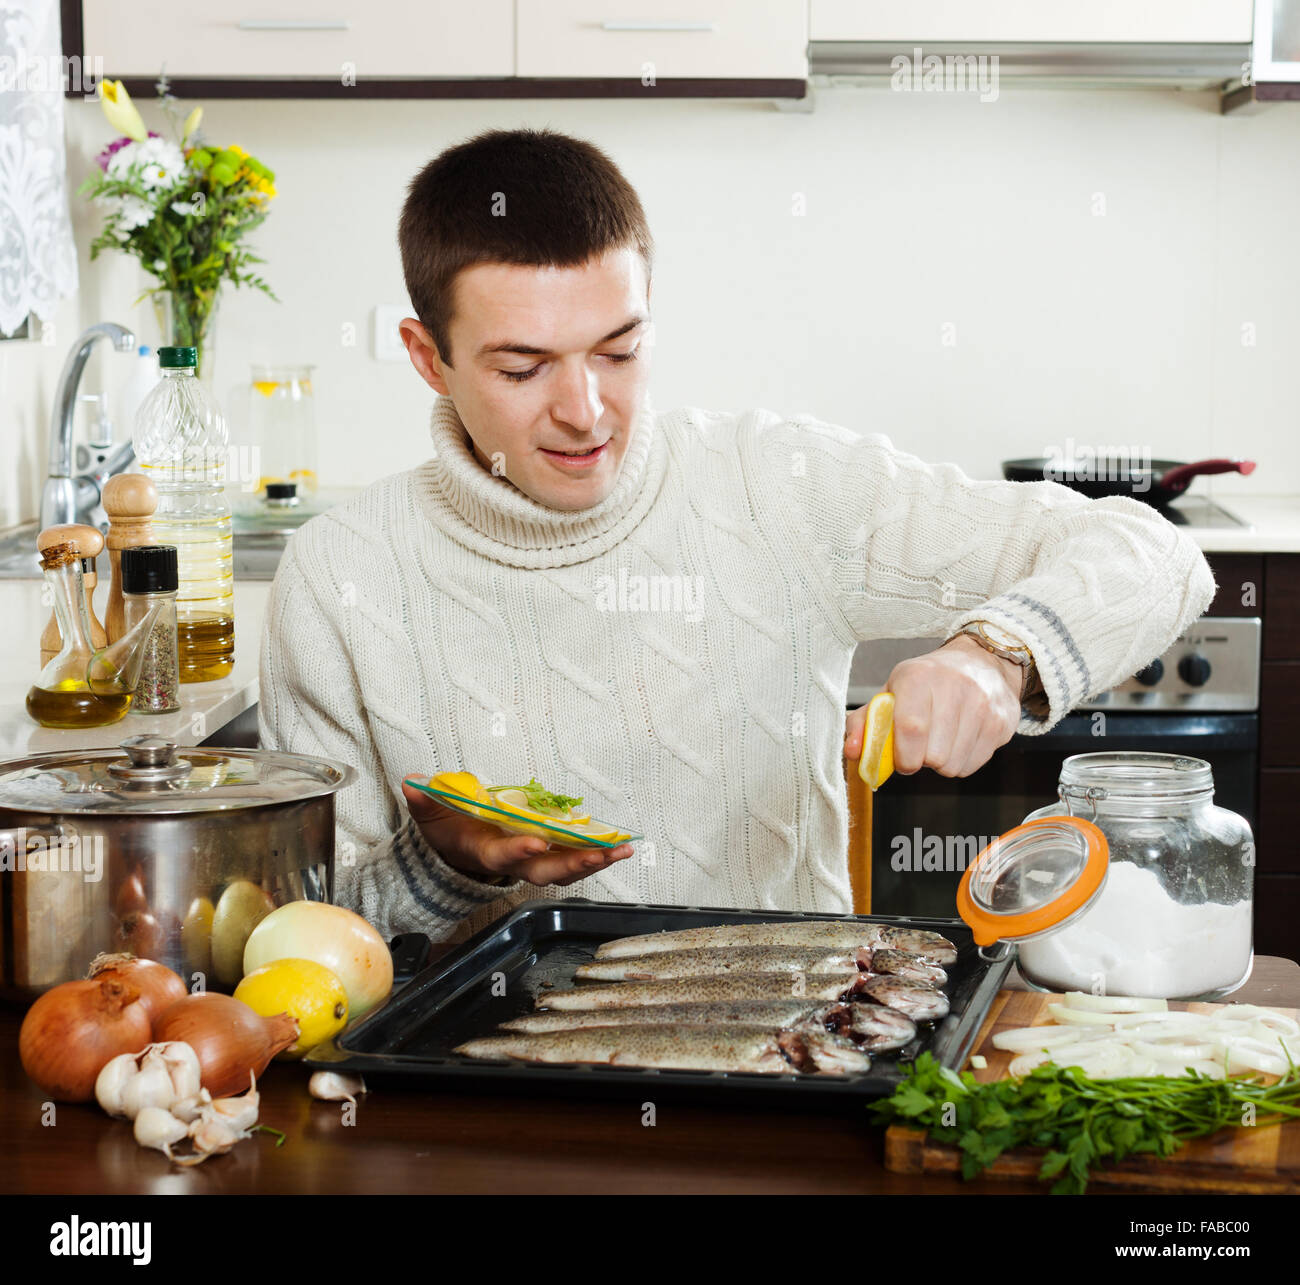 Home Kitchen Cooking Guy Cooking Fish With Lemon In Baking Sheet At Home Kitchen Stock